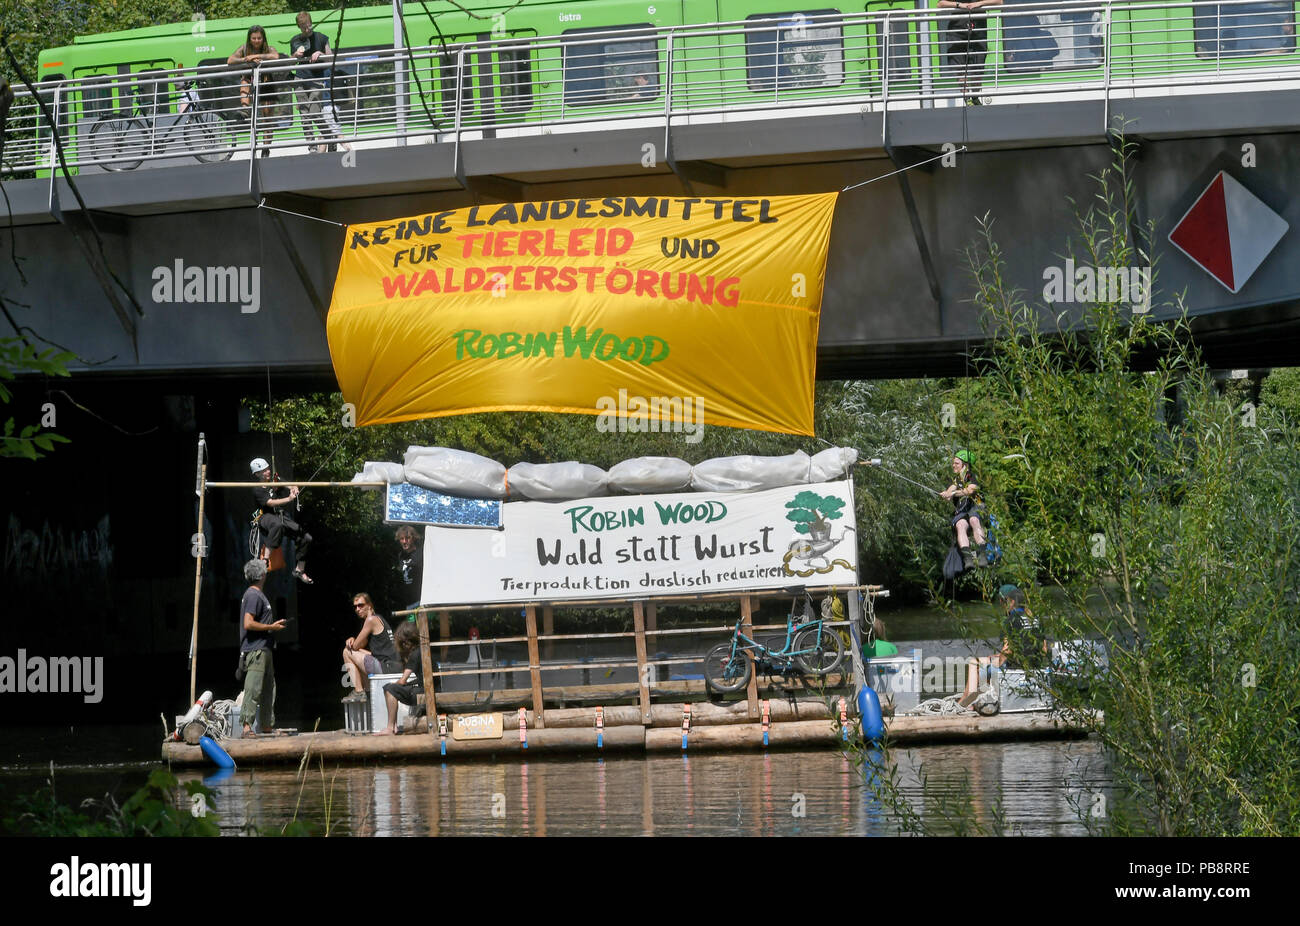 27 July 2018, Germany, Hanover: A raft of the environmental and nature conservation organisation Robin Wood swims on the Ihme River with tour participants. In the background, climbing activists let themselves down the Benno Ohnesorg Bridge with a protest banner reading: 'No state funding for animal suffering and forest destruction!' Under the motto: 'Forest instead of sausage - drastically reduce animal production' Robin Wood has started this year's raft action tour in the capital of Lower Saxony. Over the next three weeks the crew will sail on the wooden raft via the Mittelland Canal and Wese - Stock Image